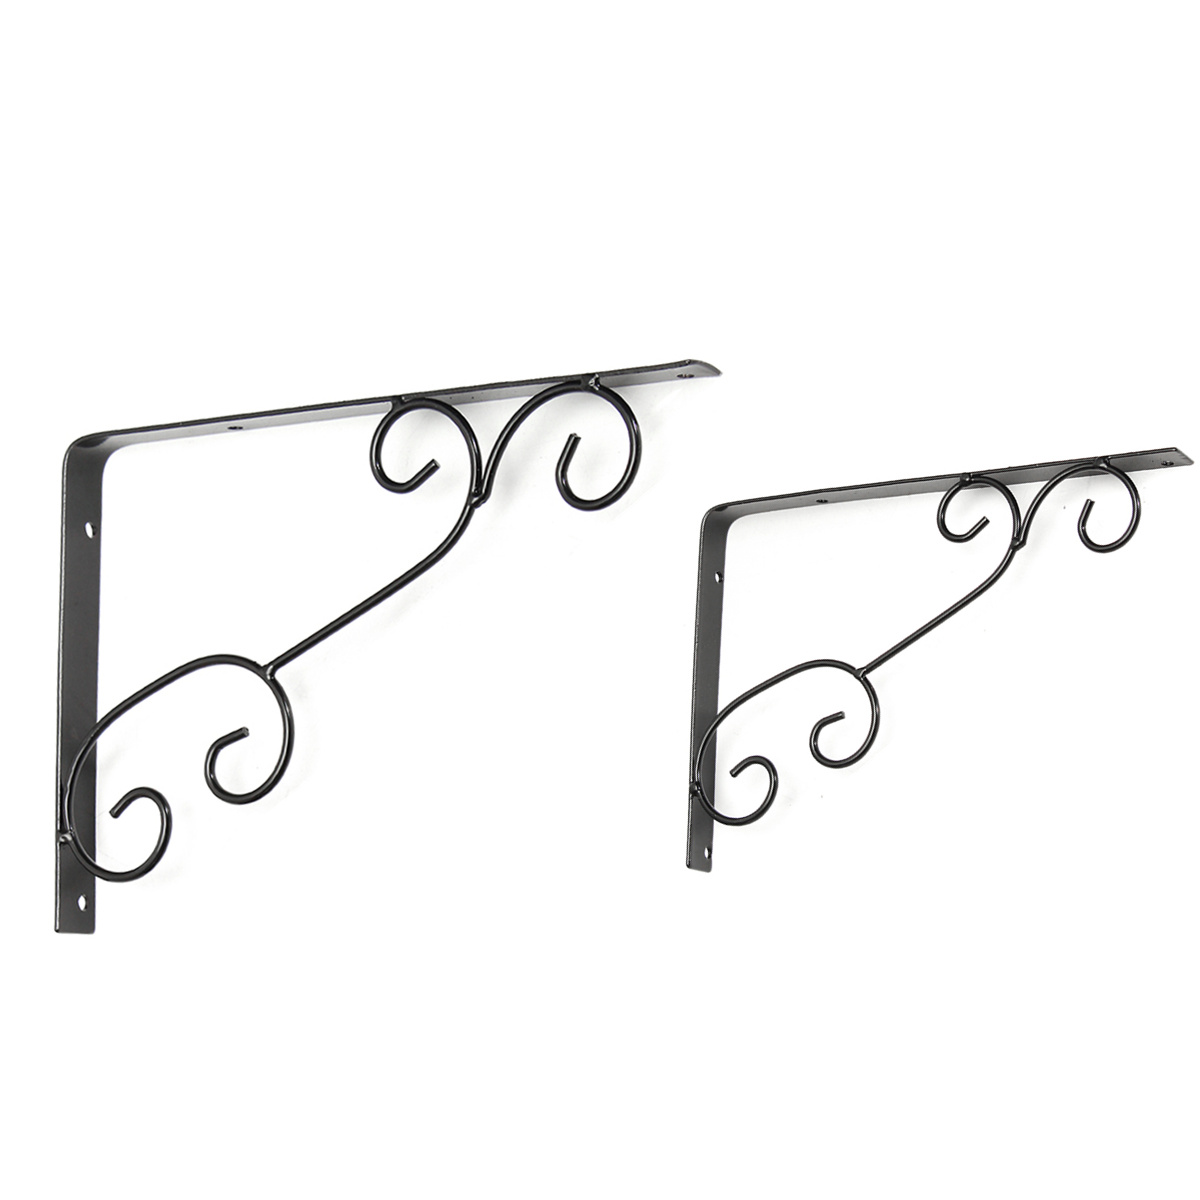 Antique Floral Cast Iron Decorative Shelf Support Brackets Wall Mounted